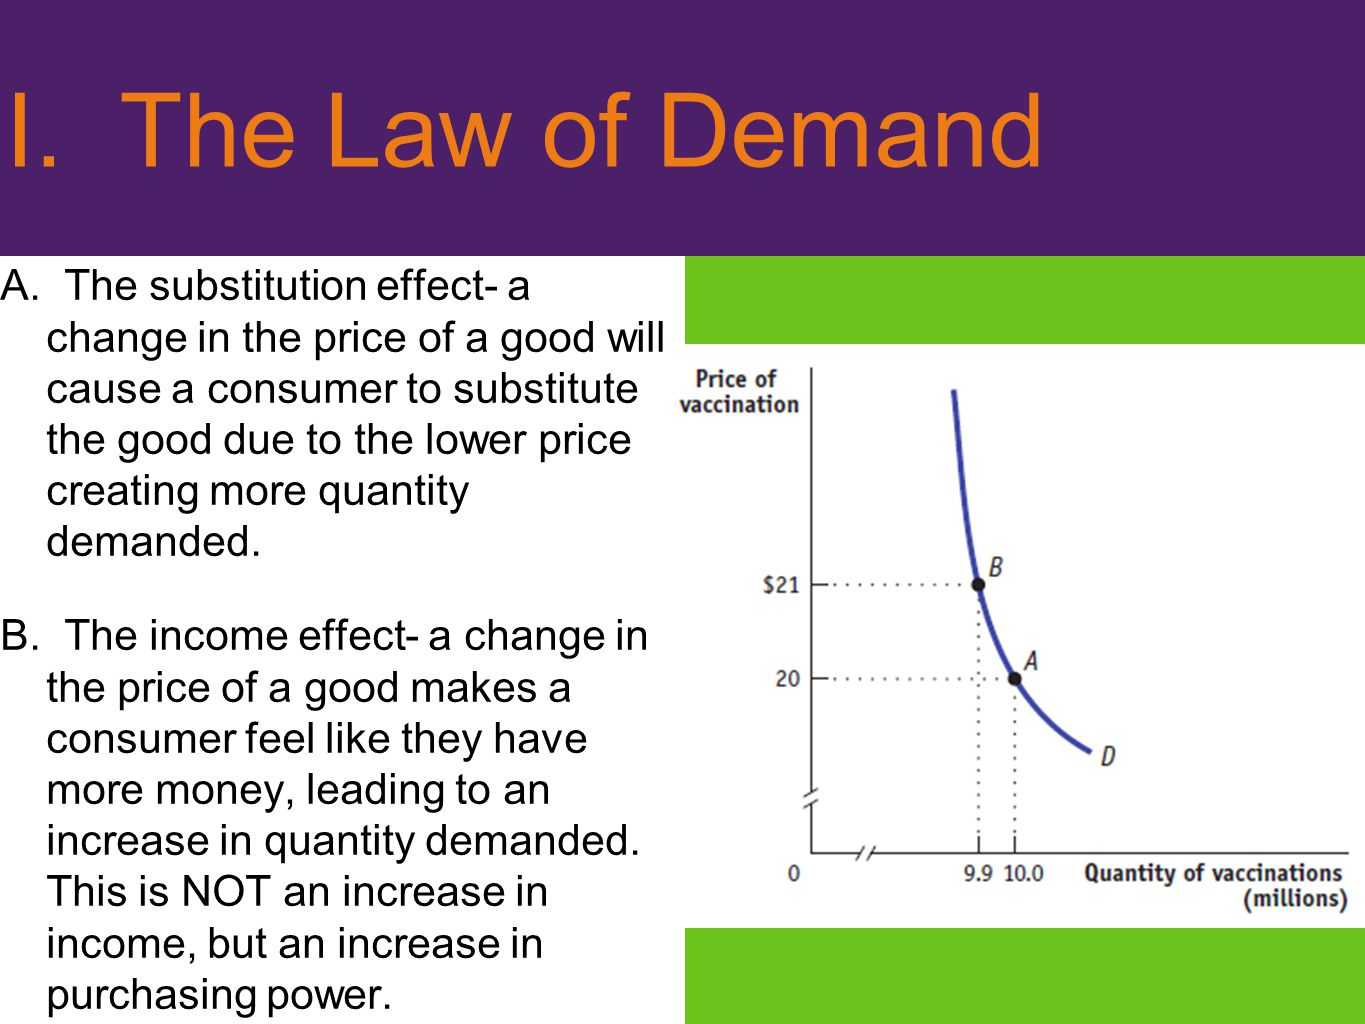 I. The Law of Demand A. The substitution effect- a change in the price of a good will cause a consumer to substitute the good due to the lower price c